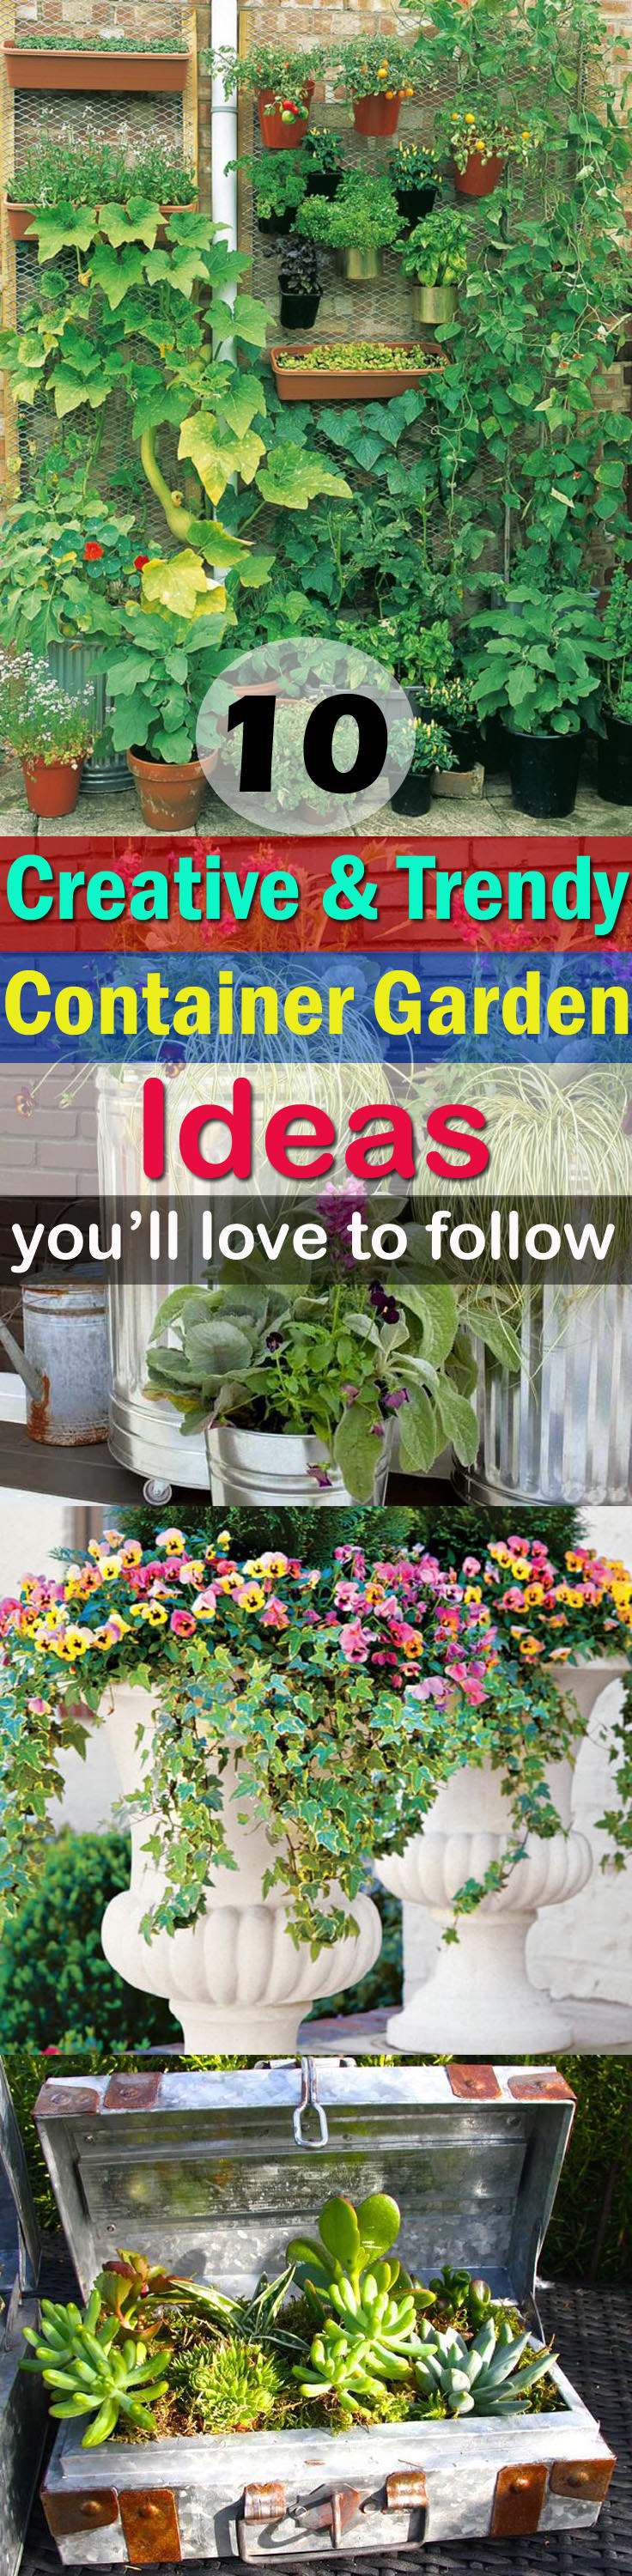 10 Creative and Trendy Container Garden Ideas You'll Love To ...